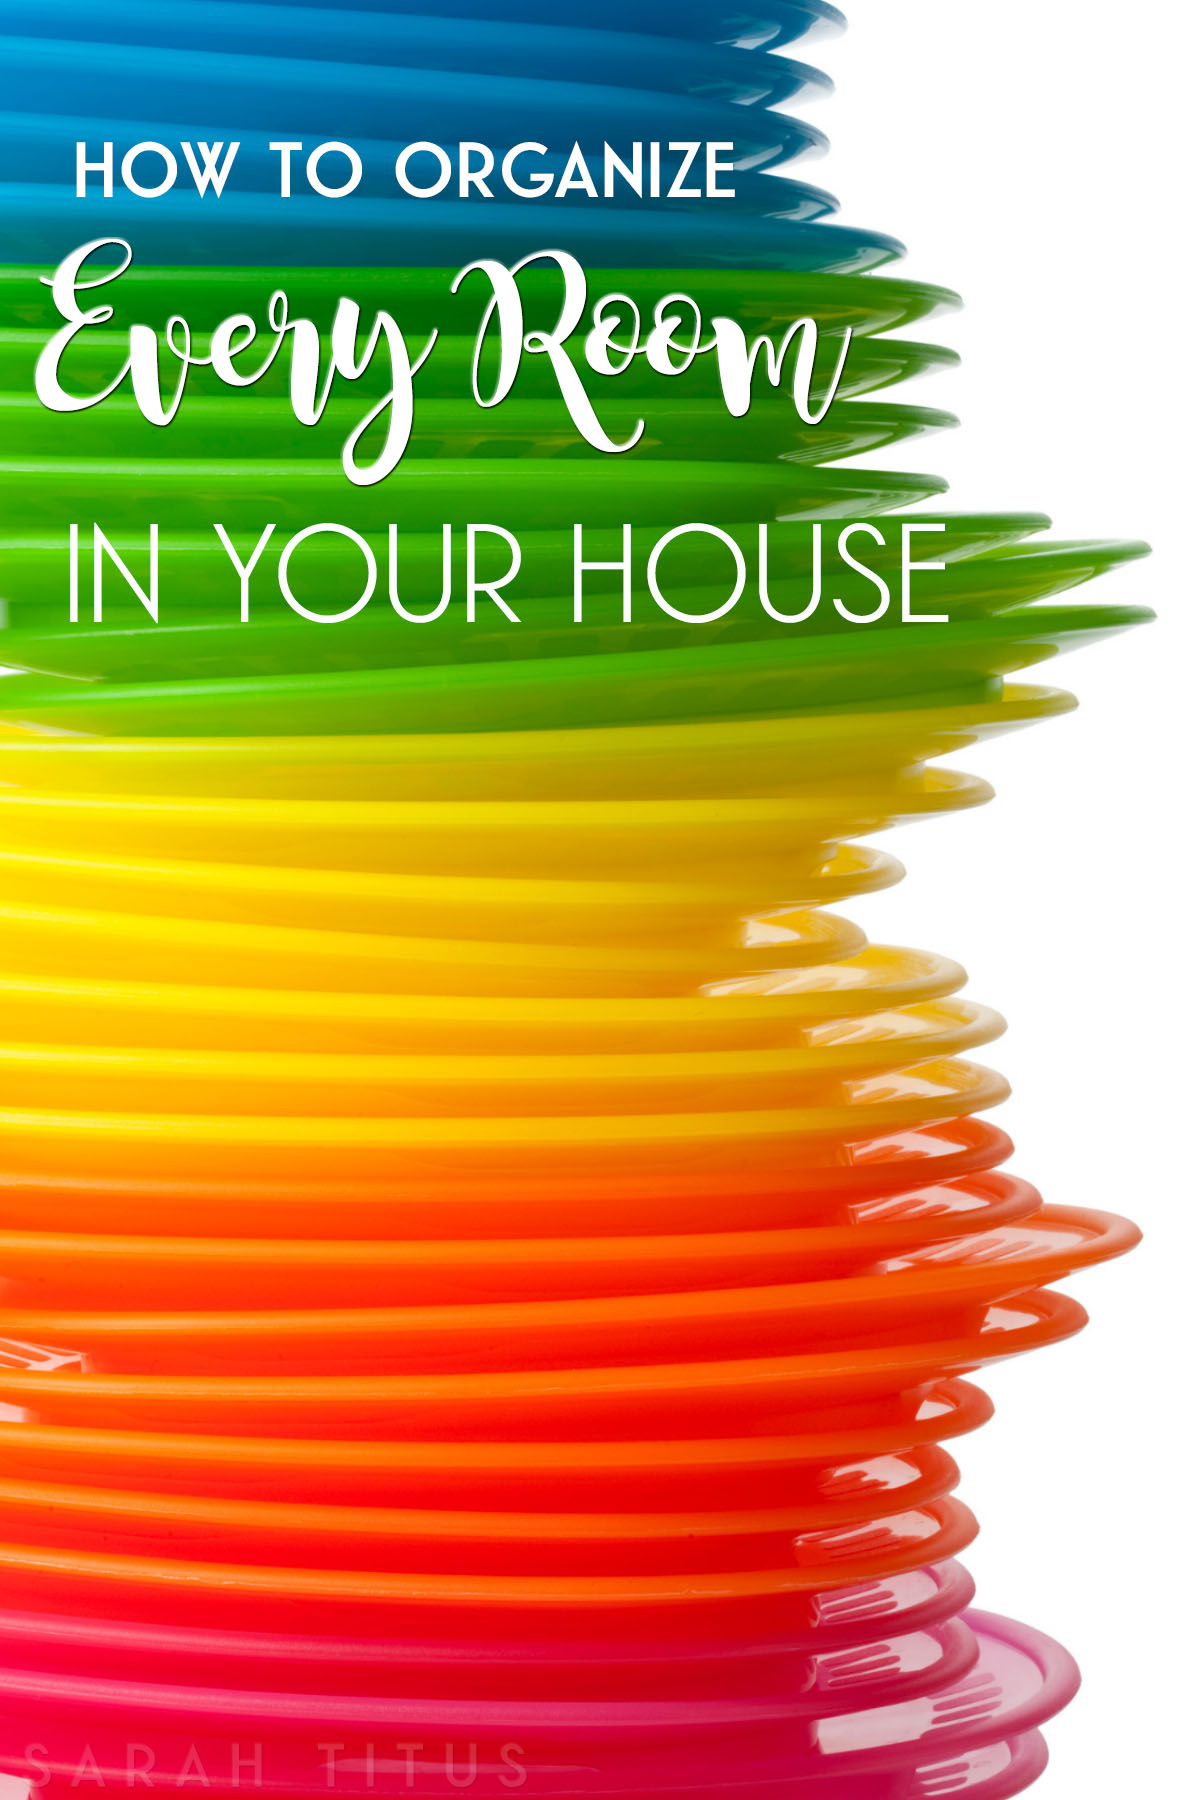 How to Organize Every Room in Your House